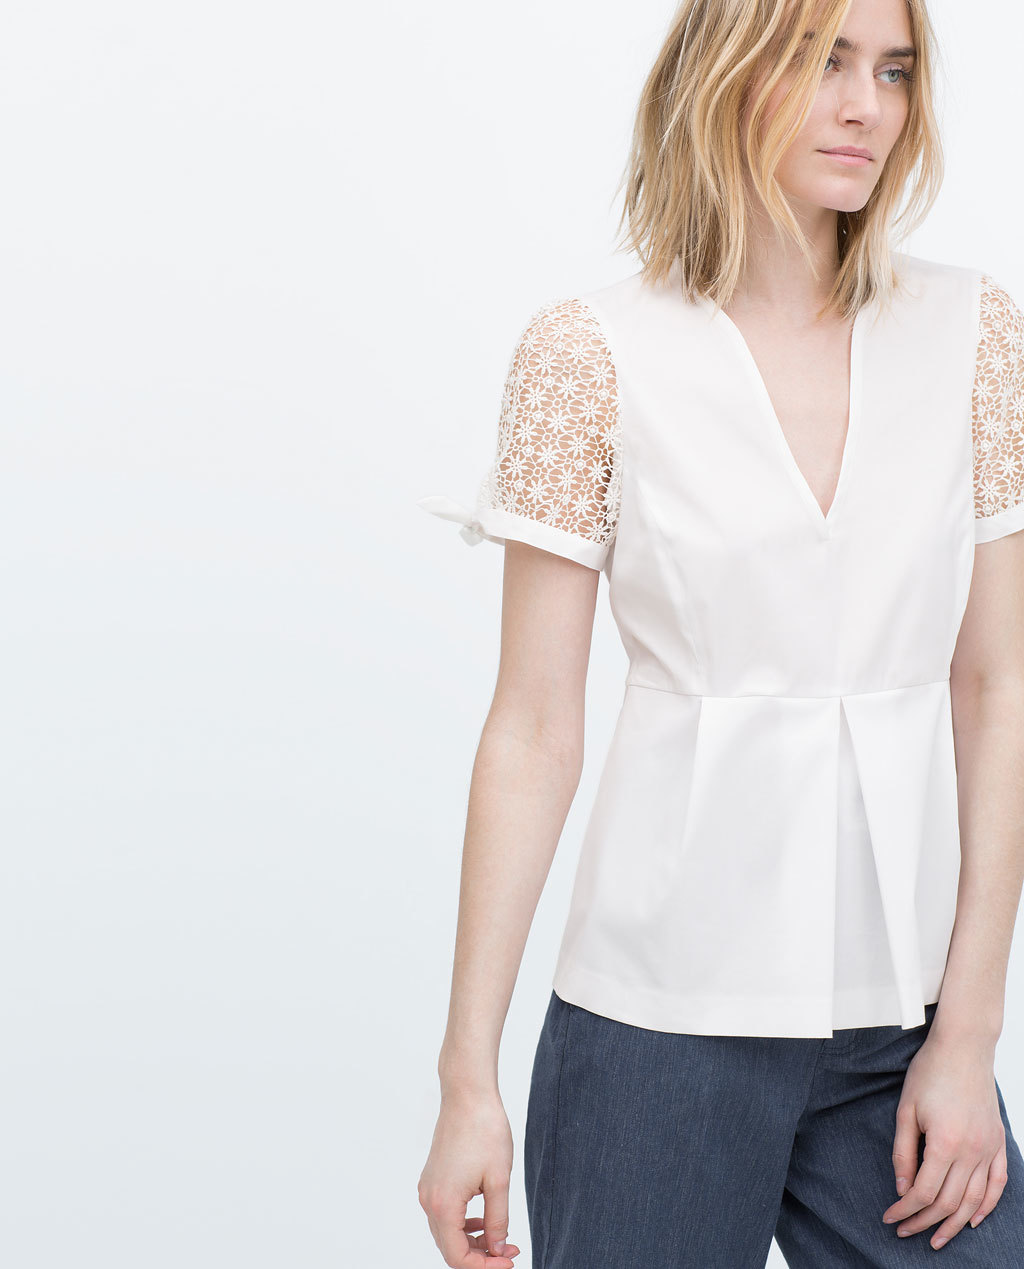 Guipure Lace Poplin Peplum Top - neckline: v-neck; pattern: plain; waist detail: peplum waist detail; predominant colour: white; occasions: casual, work, occasion; length: standard; style: top; fibres: cotton - stretch; fit: tailored/fitted; sleeve length: short sleeve; sleeve style: standard; texture group: cotton feel fabrics; pattern type: fabric; embellishment: lace; season: s/s 2015; wardrobe: highlight